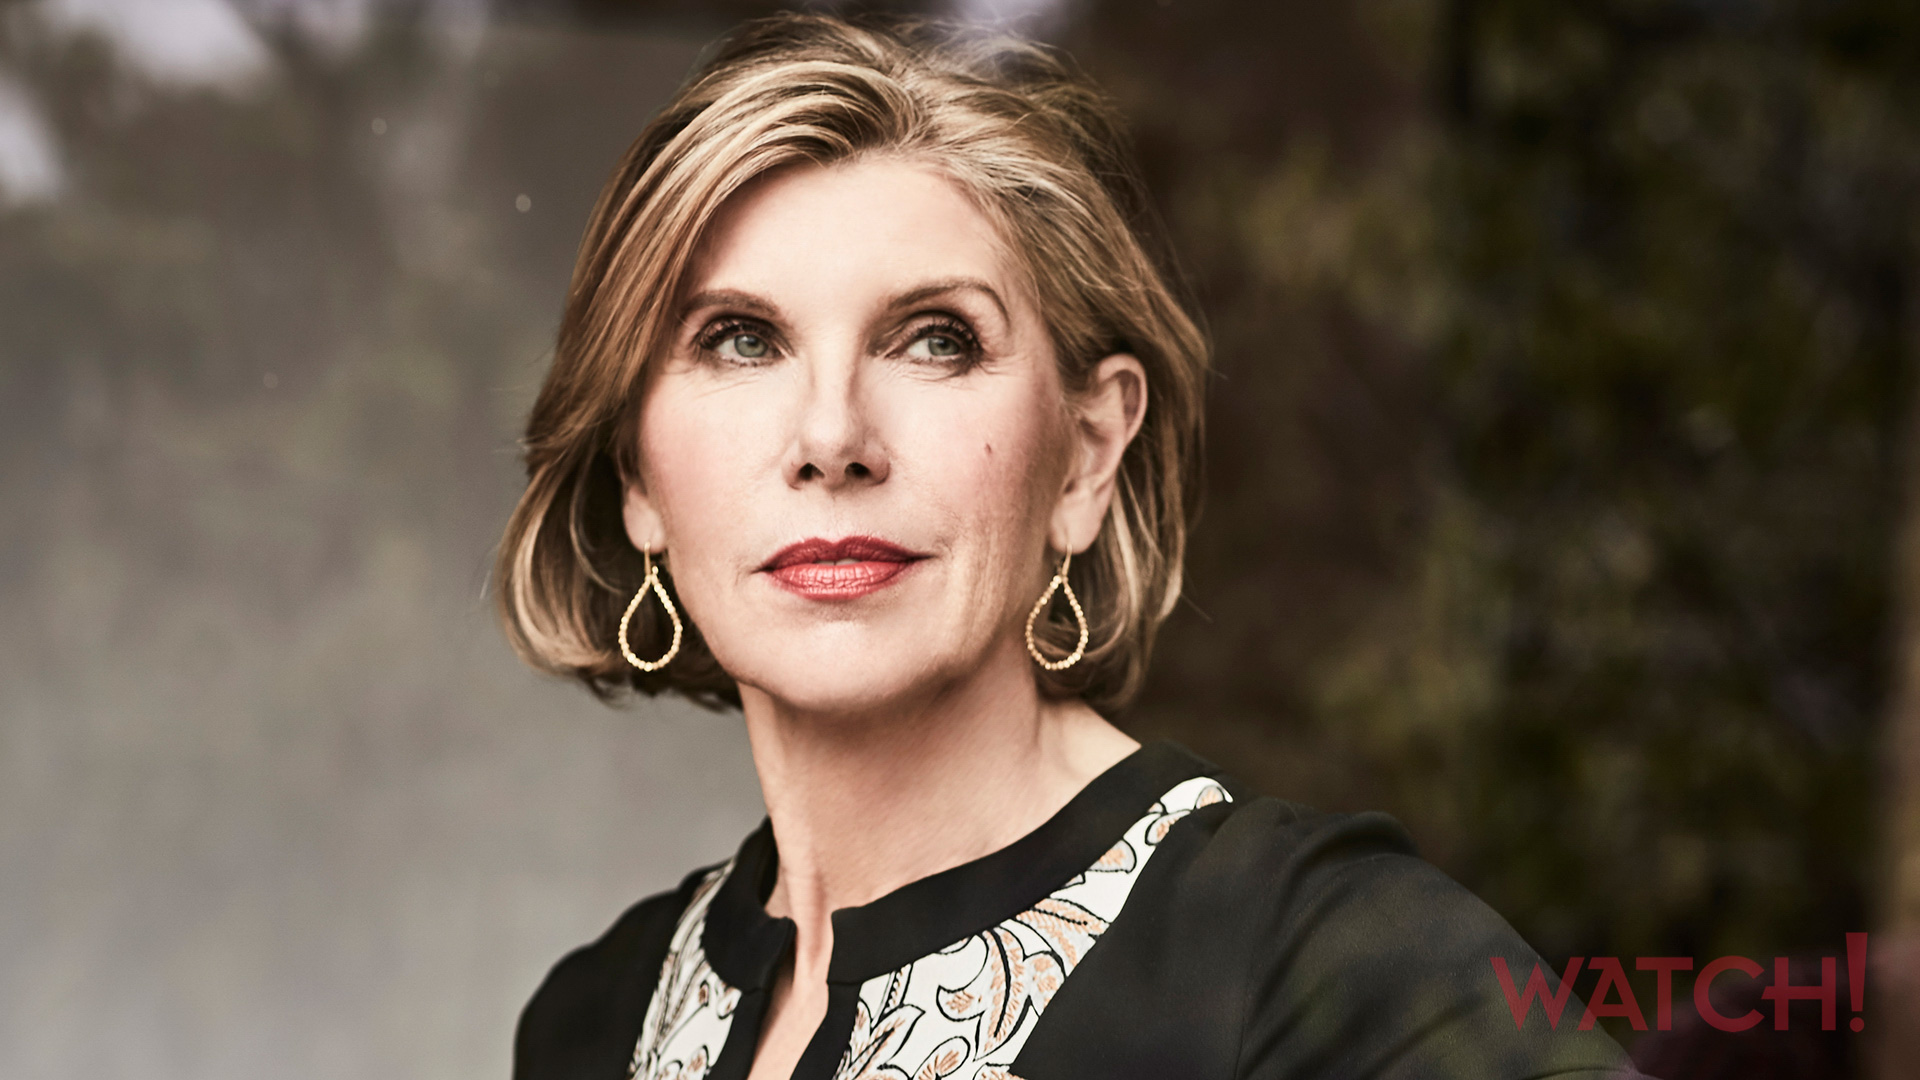 We bow down to these jaw-droppingly gorgeous photos of Queen Baranski